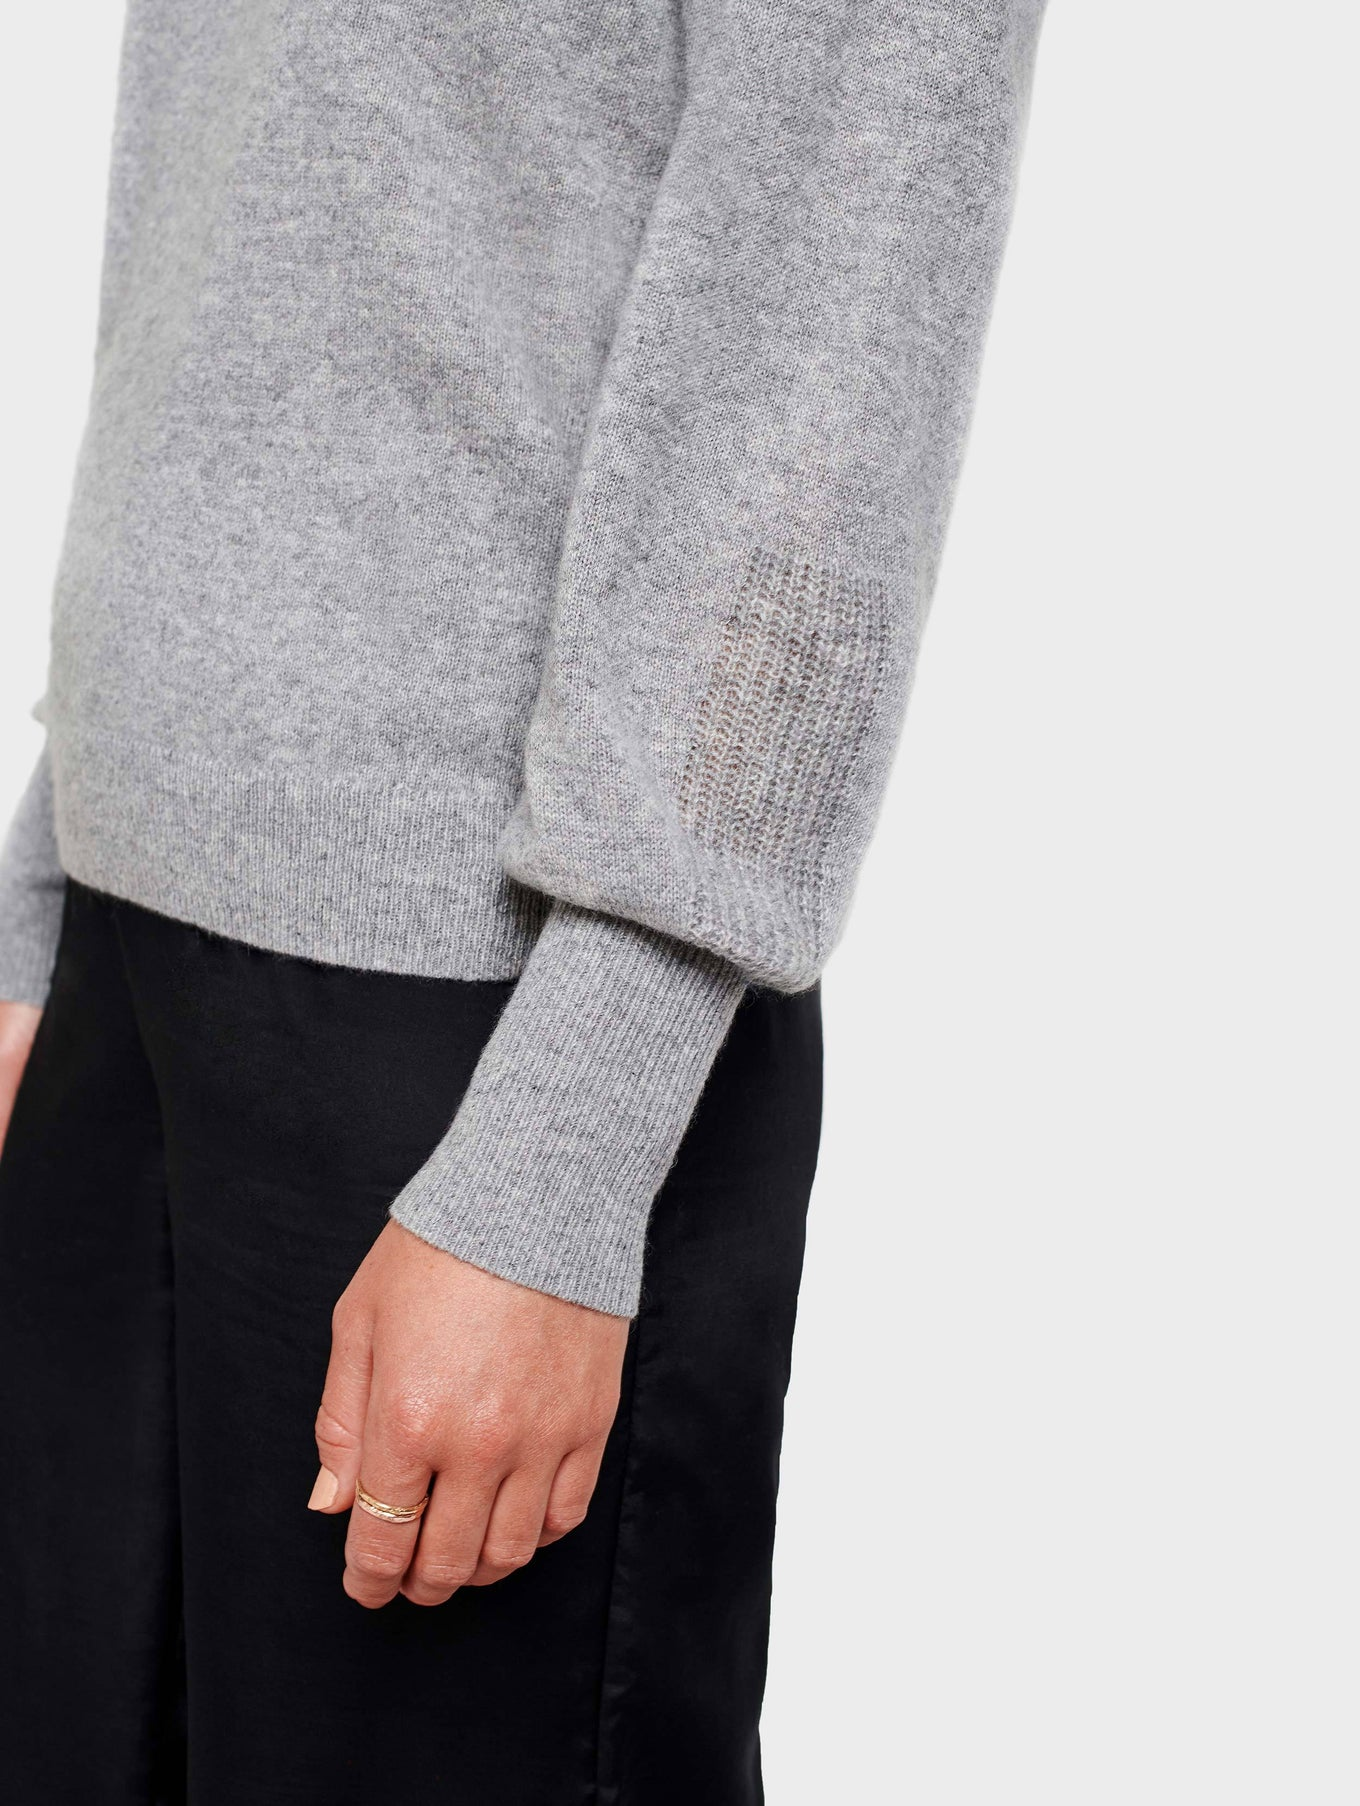 Cashmere Blouson Sleeve Crewneck - Grey Heather - Image 3